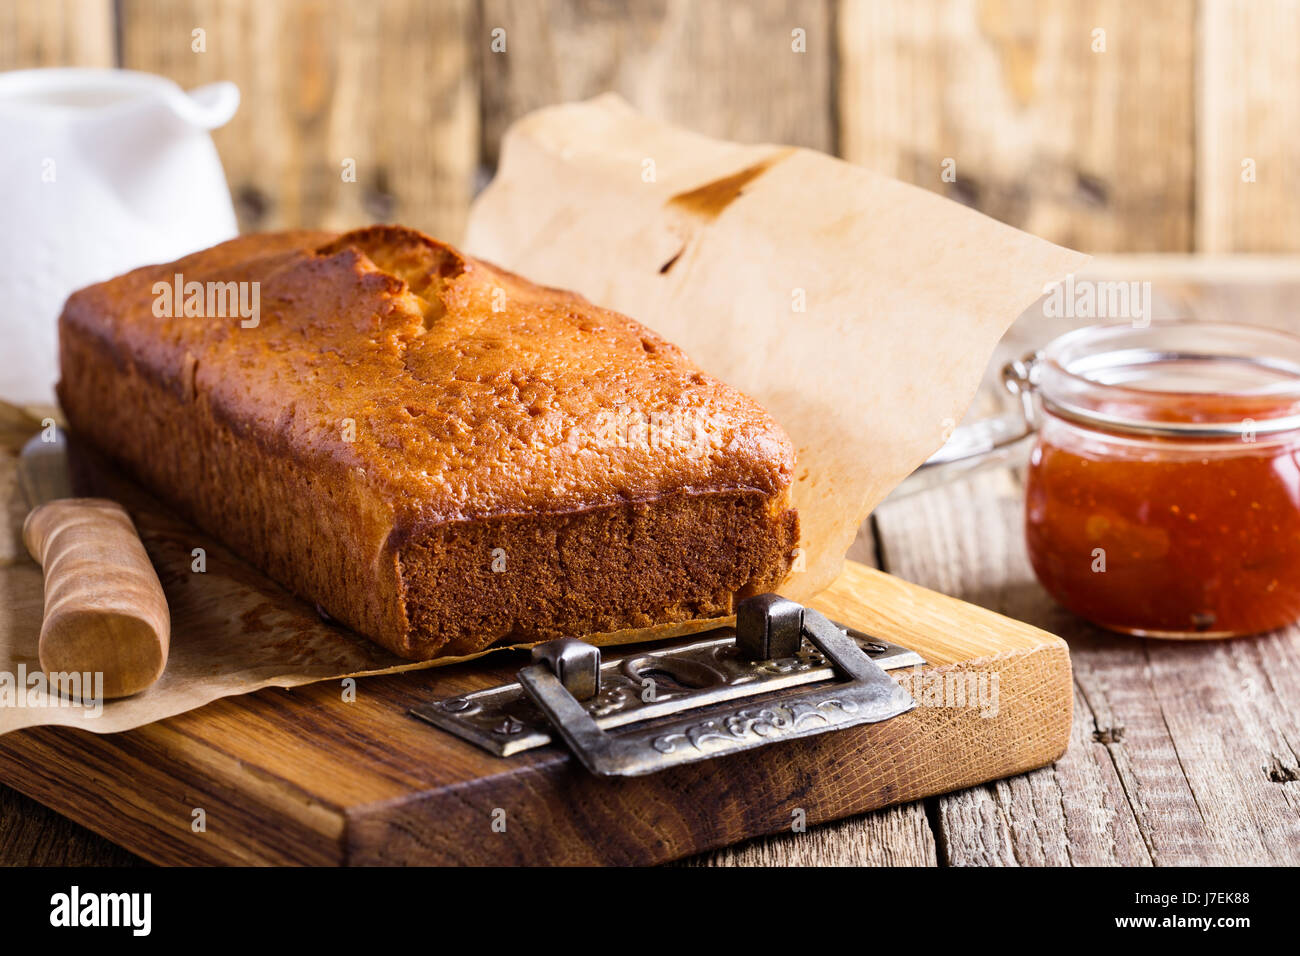 Homemade pound cake on baking paper served with fruit jam ready to eat on rustic wooden table, delicious brunch Stock Photo